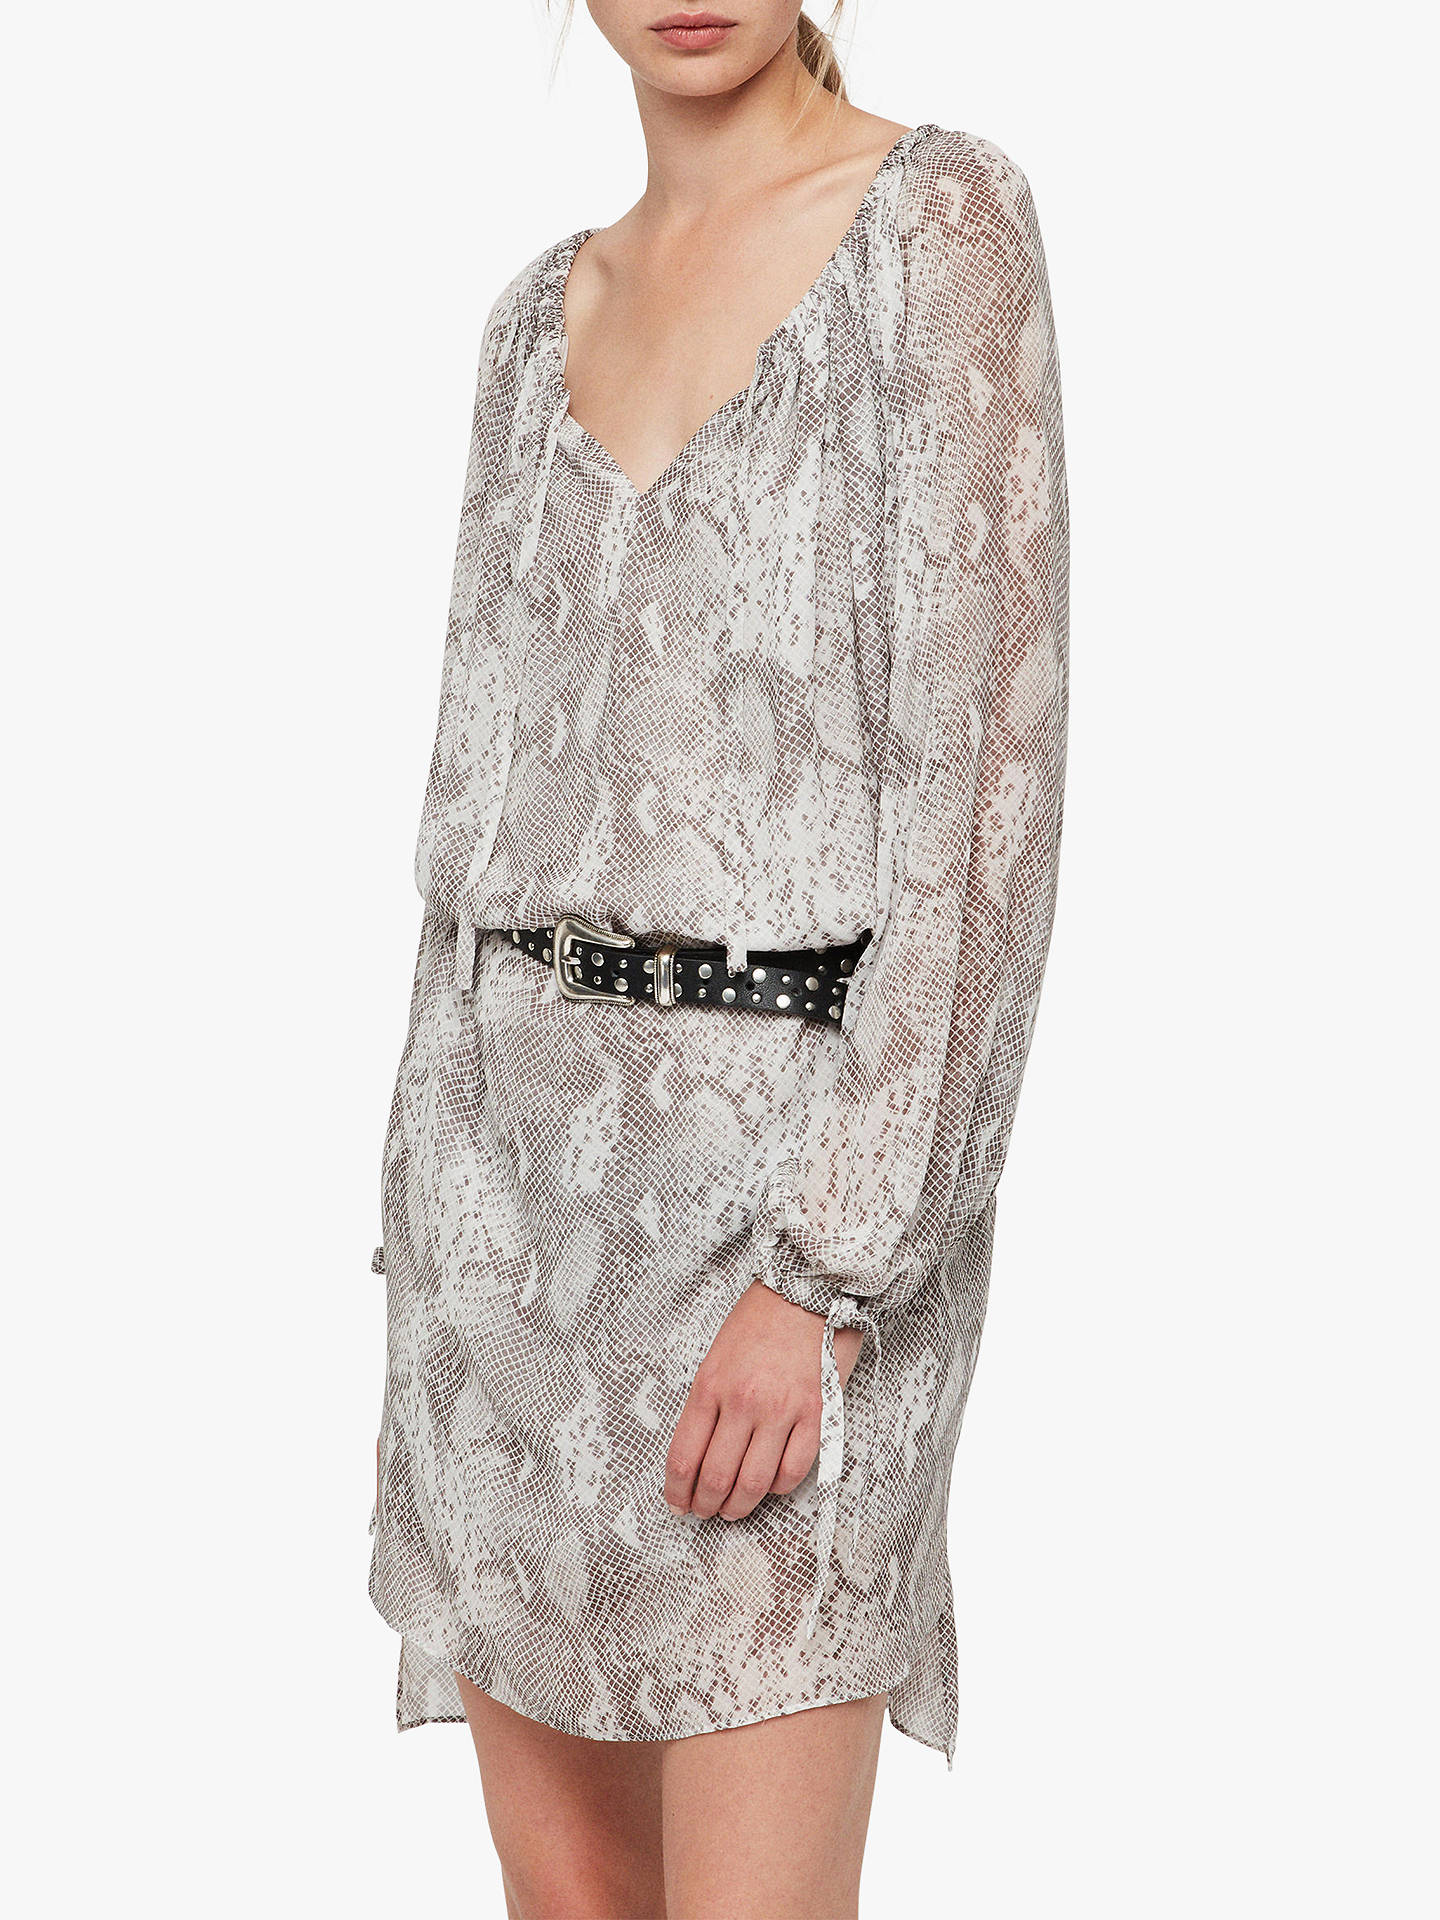 BuyAllSaints Chesca Snake Print Dress, Pale Grey, S Online at johnlewis.com